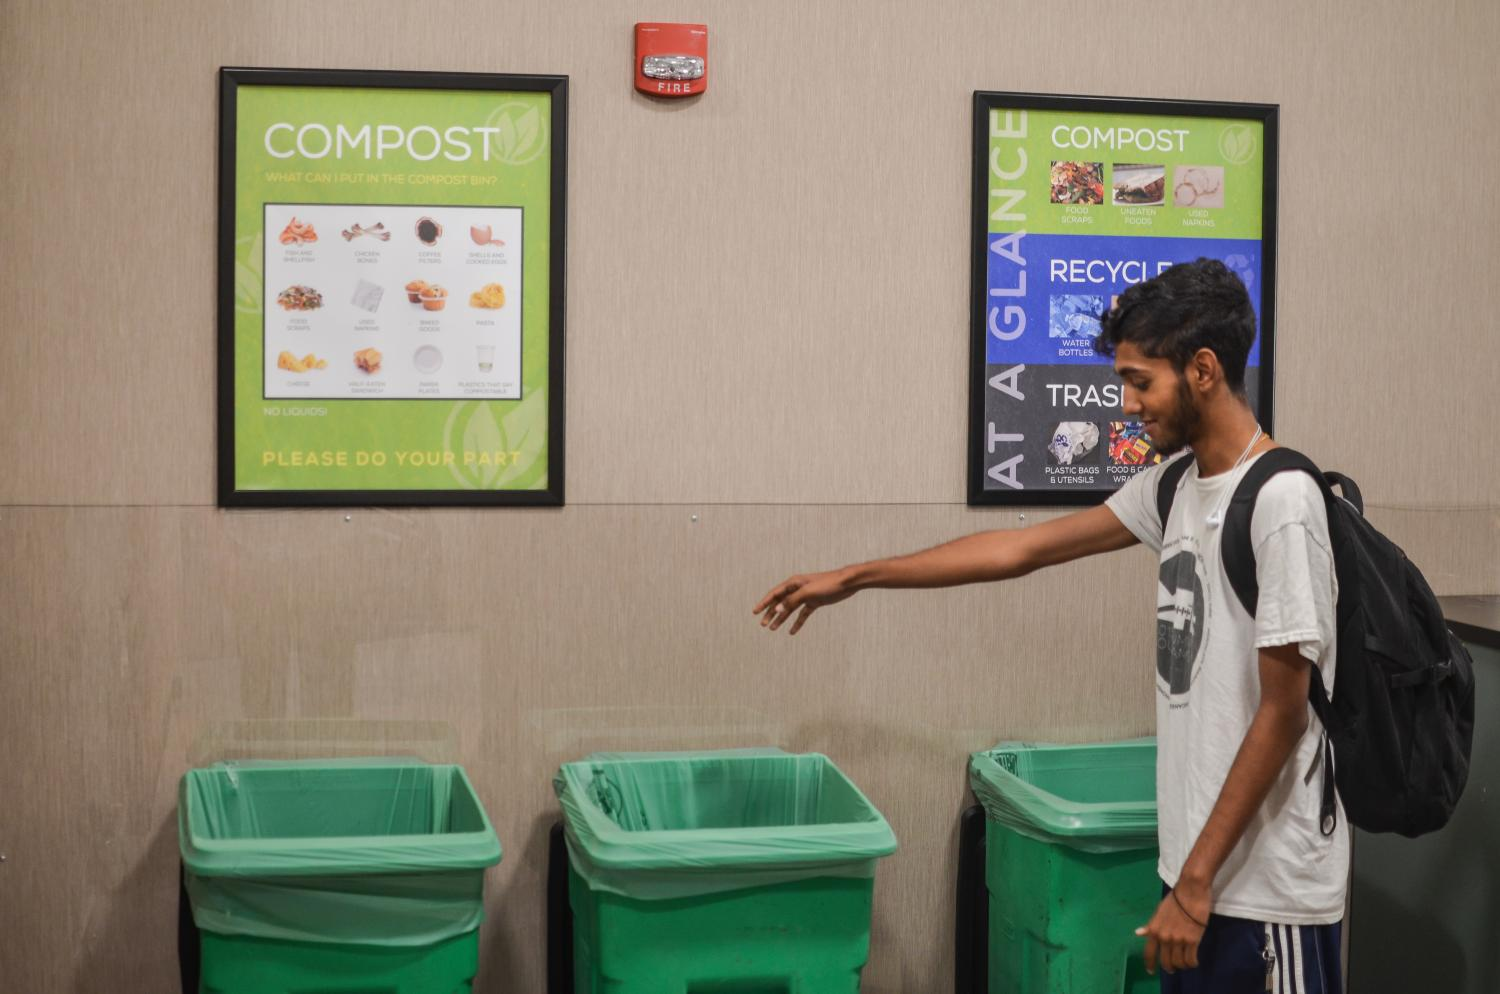 Justin Kollamana, a freshman in the College of Arts & Sciences, uses the compost bin in Straz Hall.